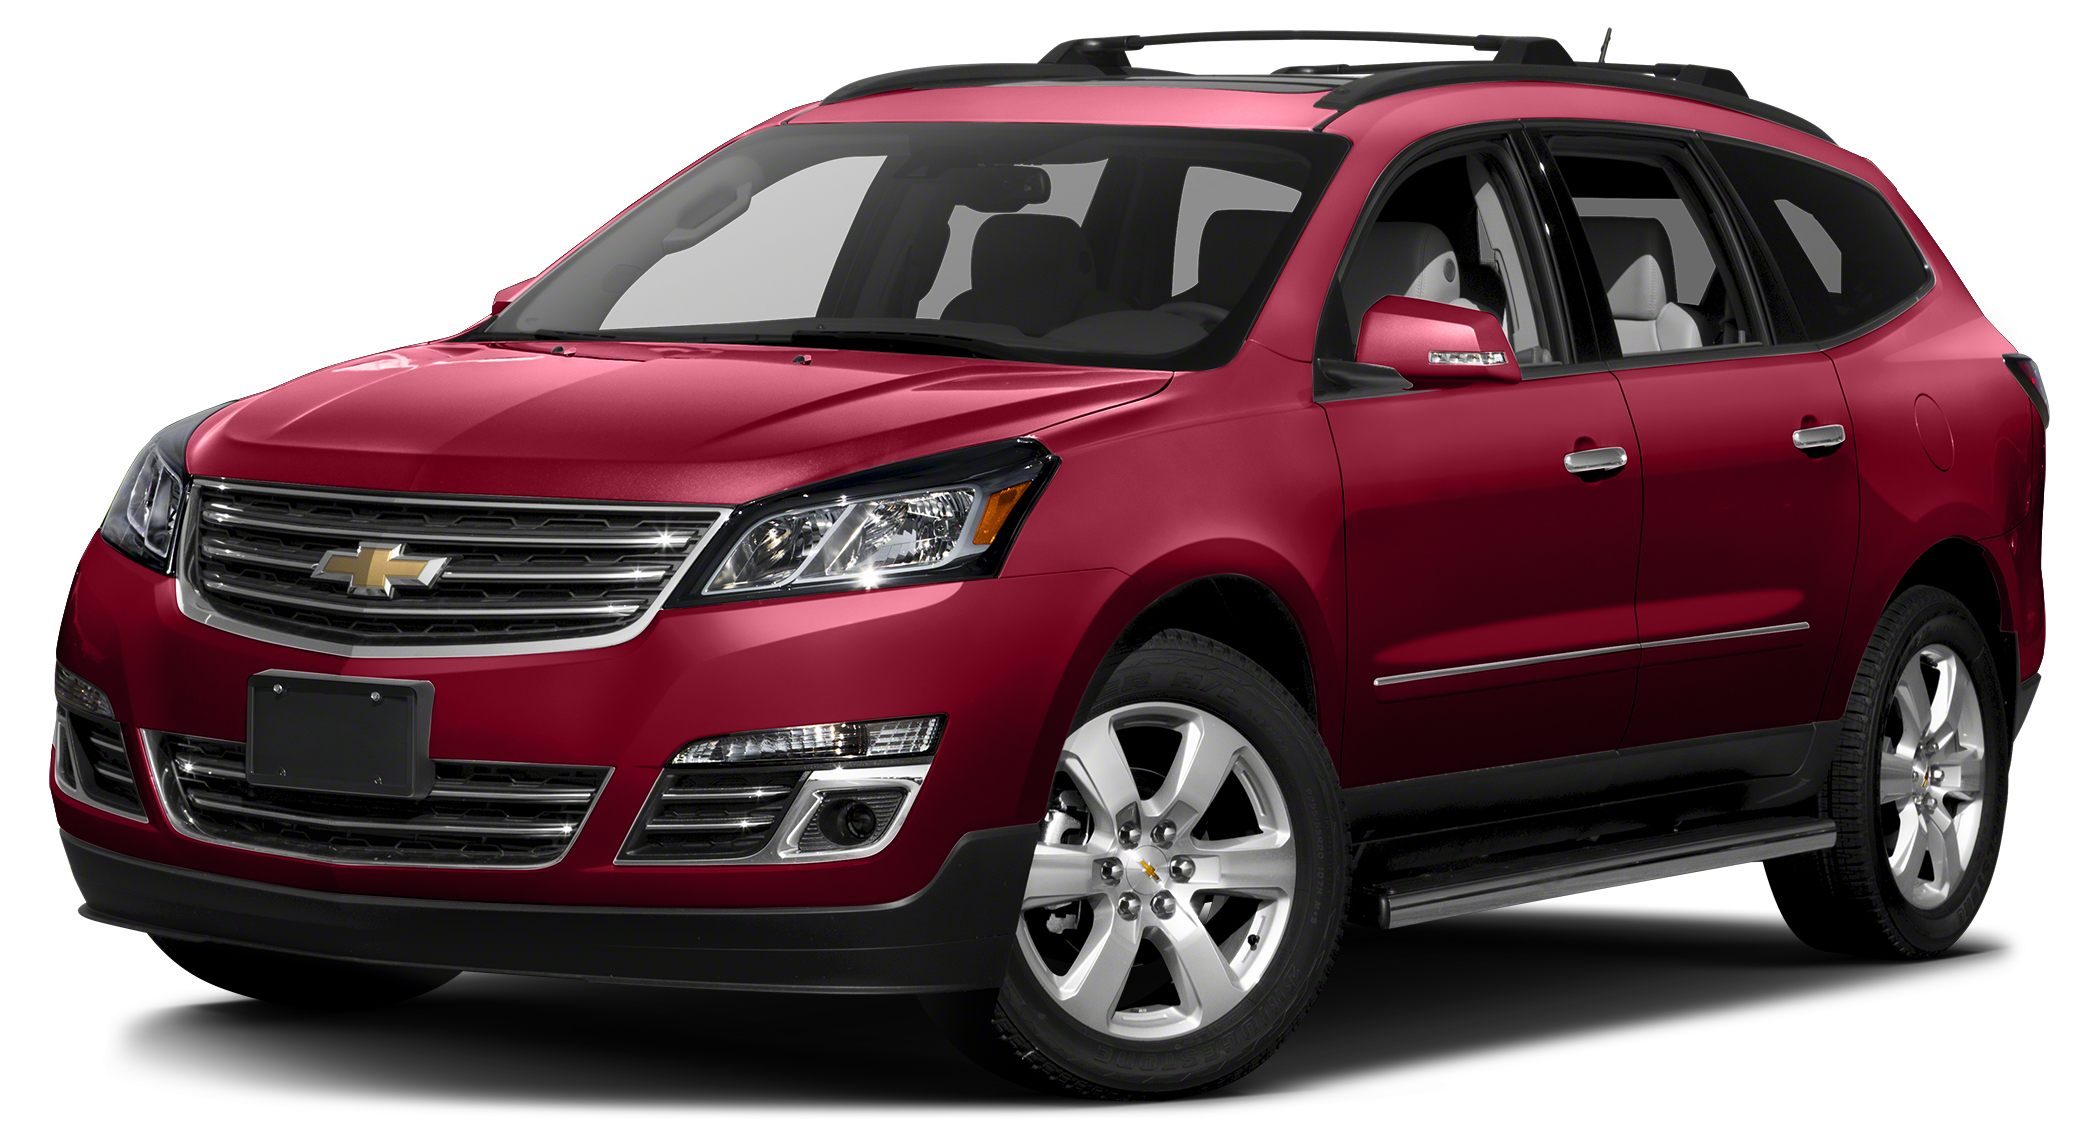 2017 Chevrolet Traverse Premier Offering the roominess of a traditional SUV but with car-like hand